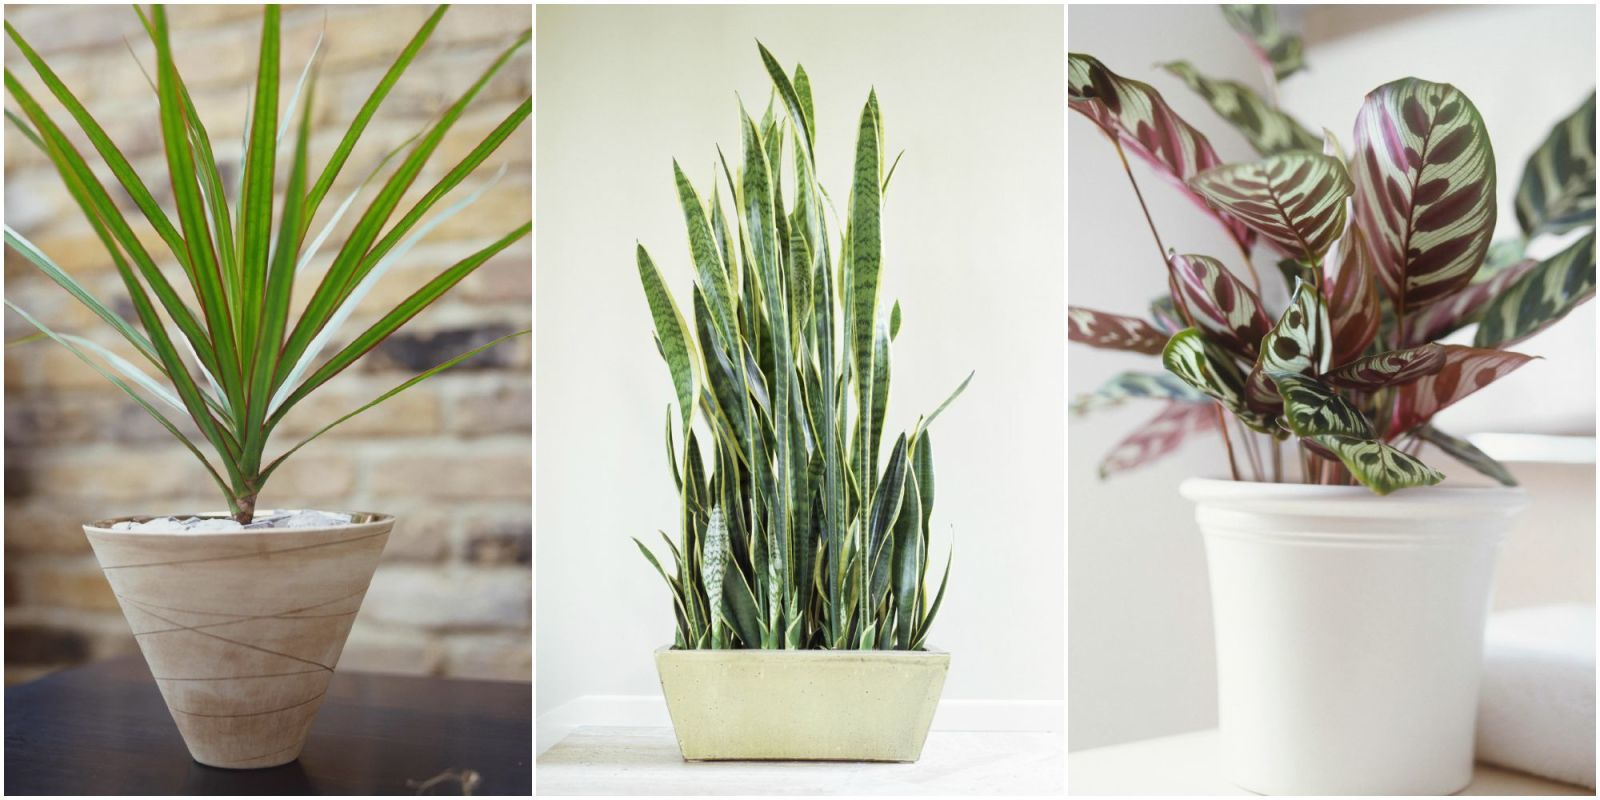 Low light houseplants plants that don 39 t require much light - Best house plants low light ...